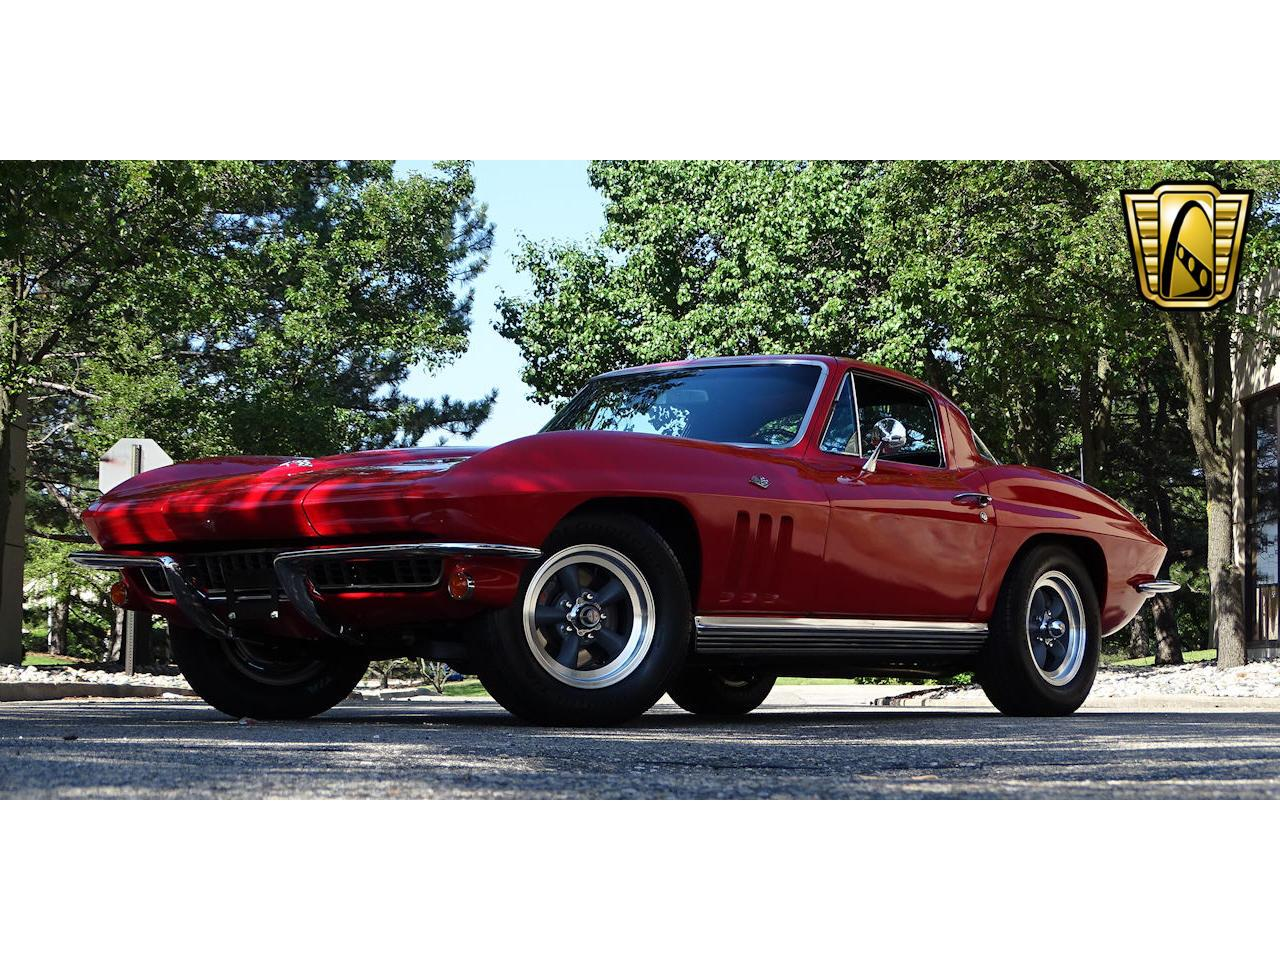 Large Picture of Classic 1966 Chevrolet Corvette located in Dearborn Michigan - $68,000.00 Offered by Gateway Classic Cars - Detroit - LH96